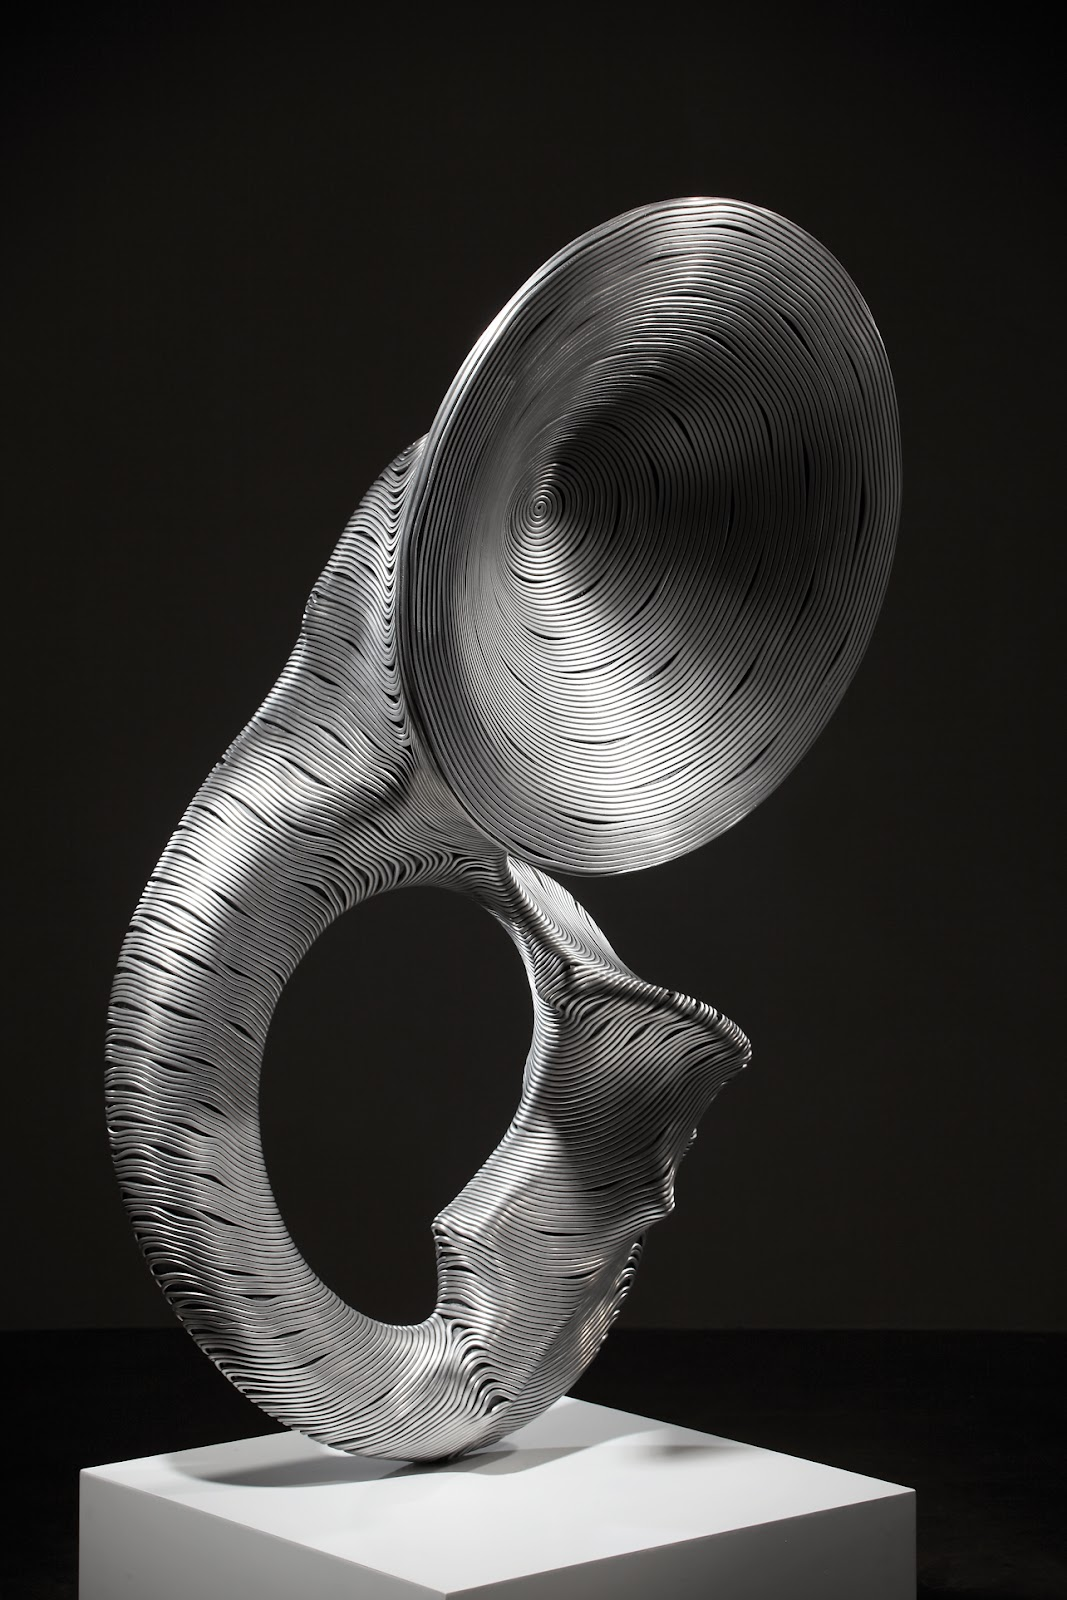 15-Sousaphone-Park-Seung-Mo-South-Korean-Artist-&-Sculptor-Wire-Sculpture-www-designstack-co